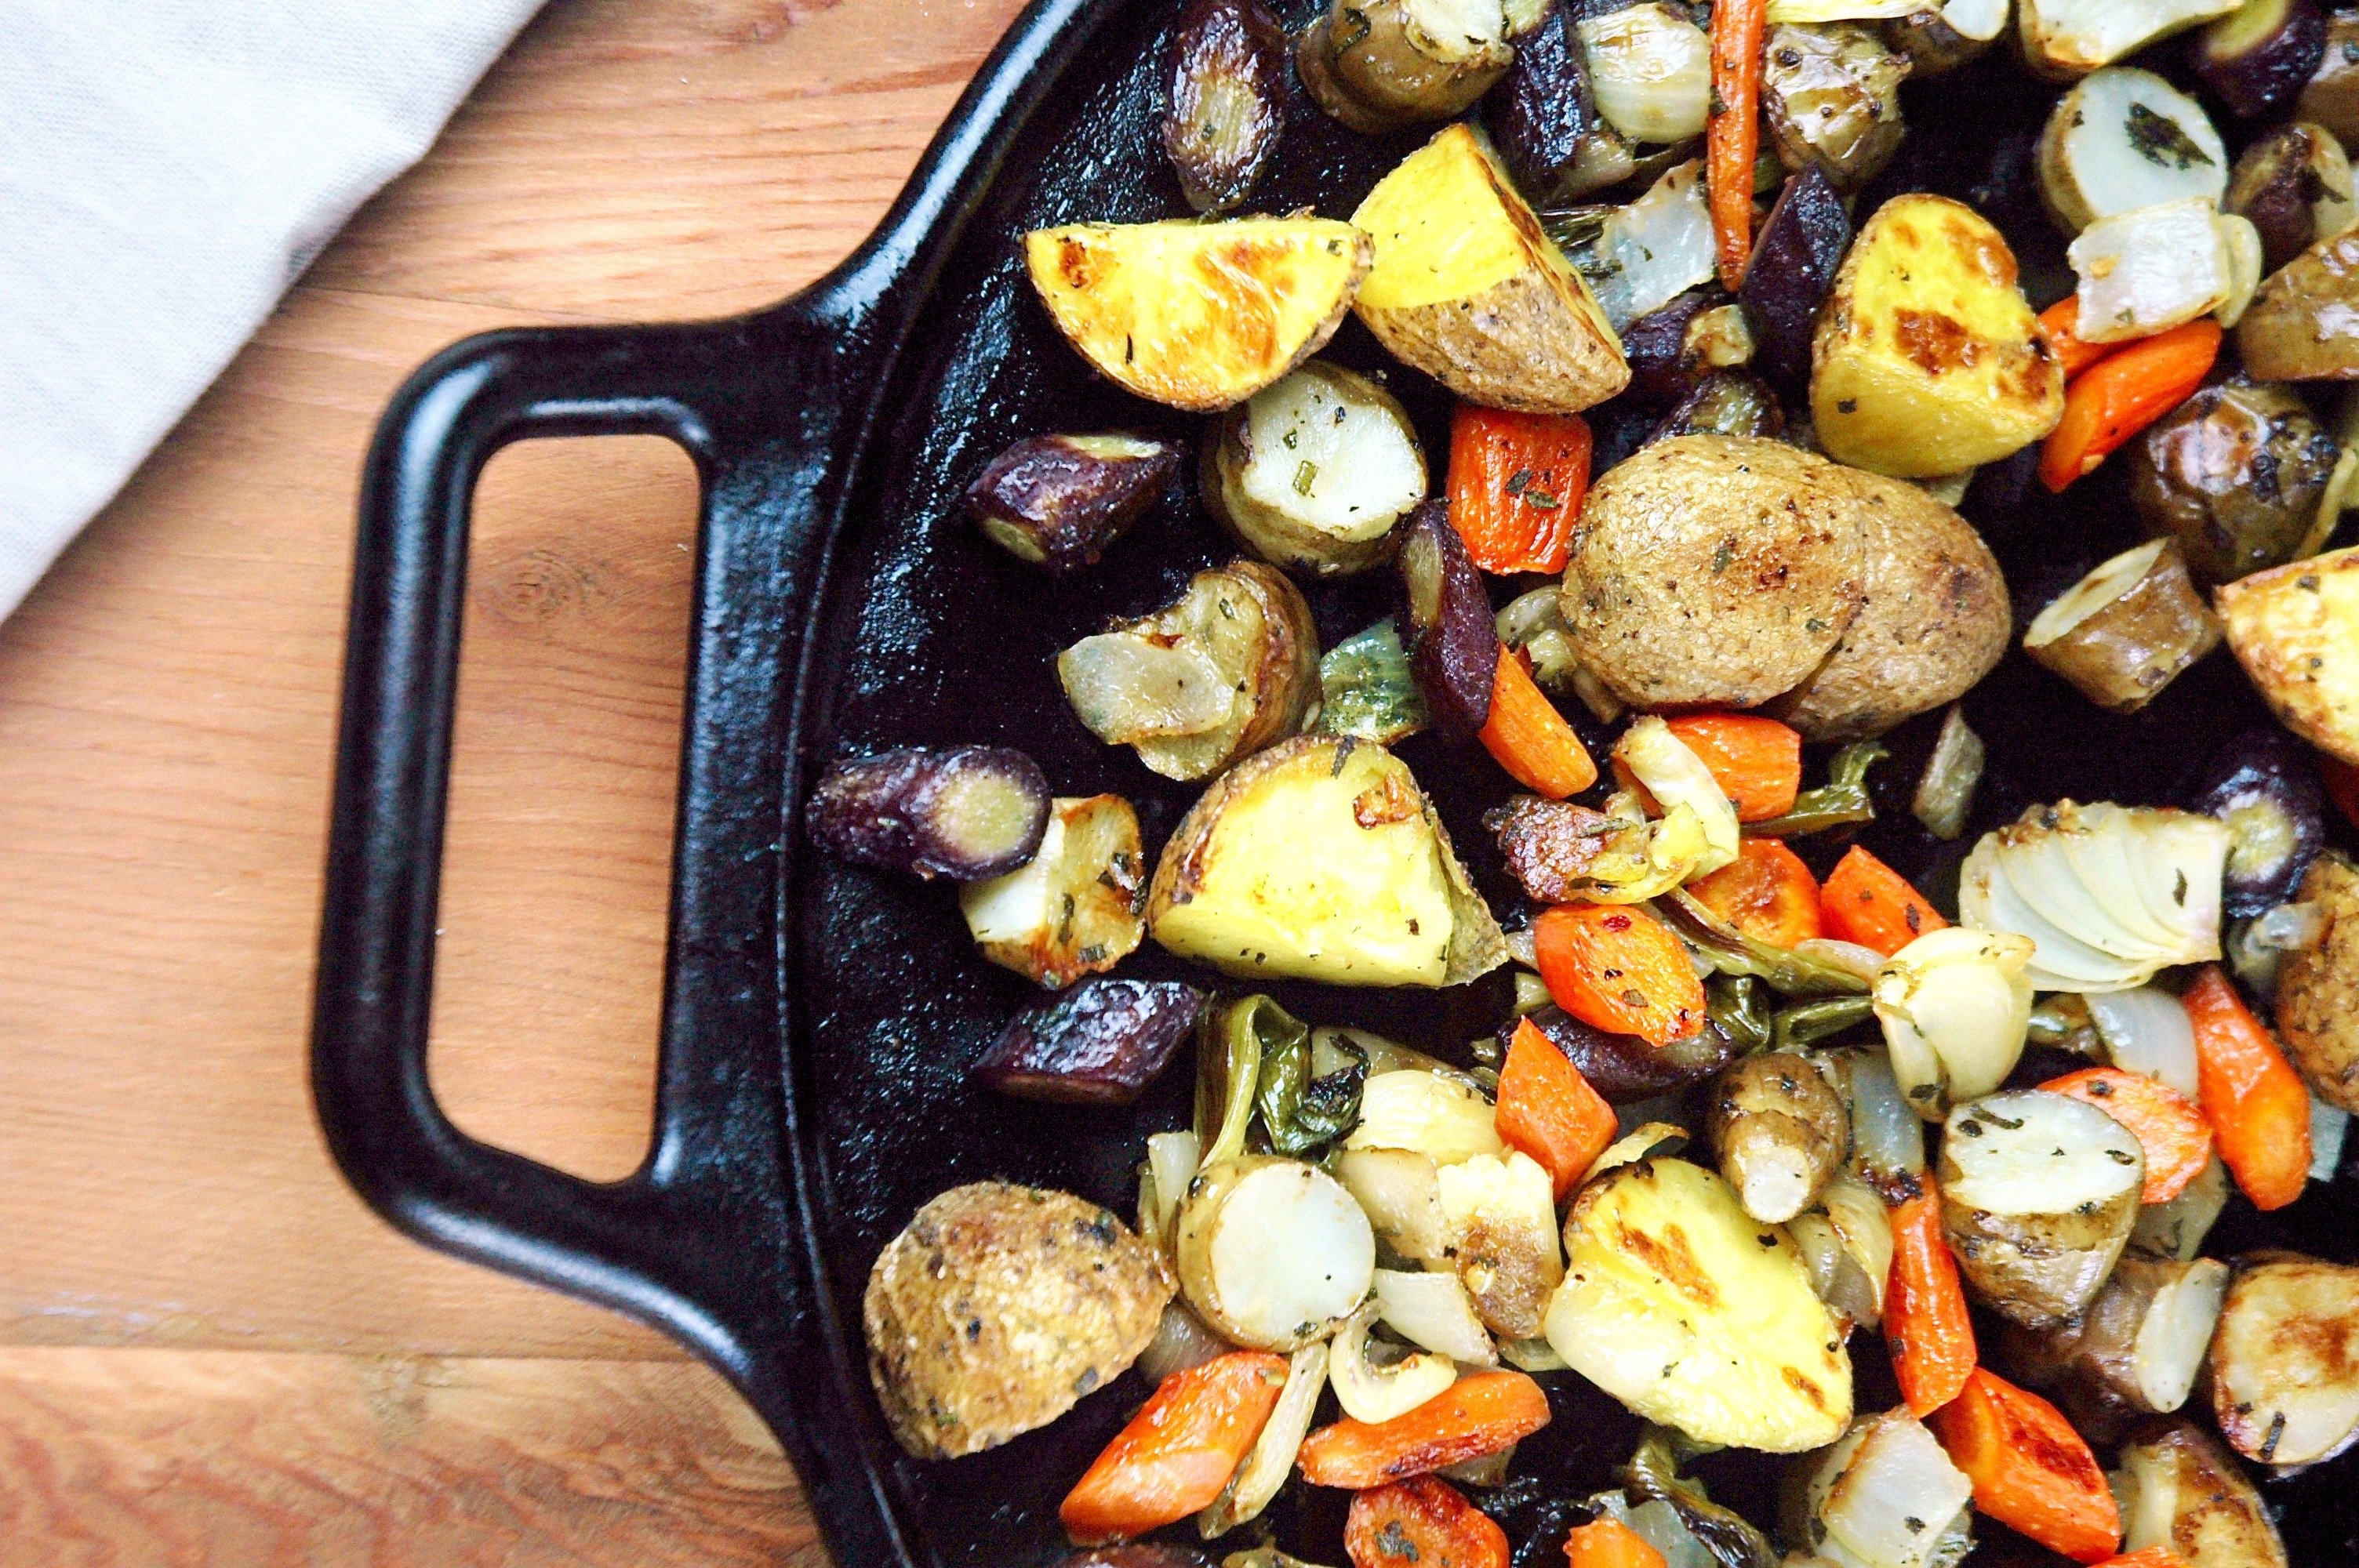 Herb-Roasted Root Veggies